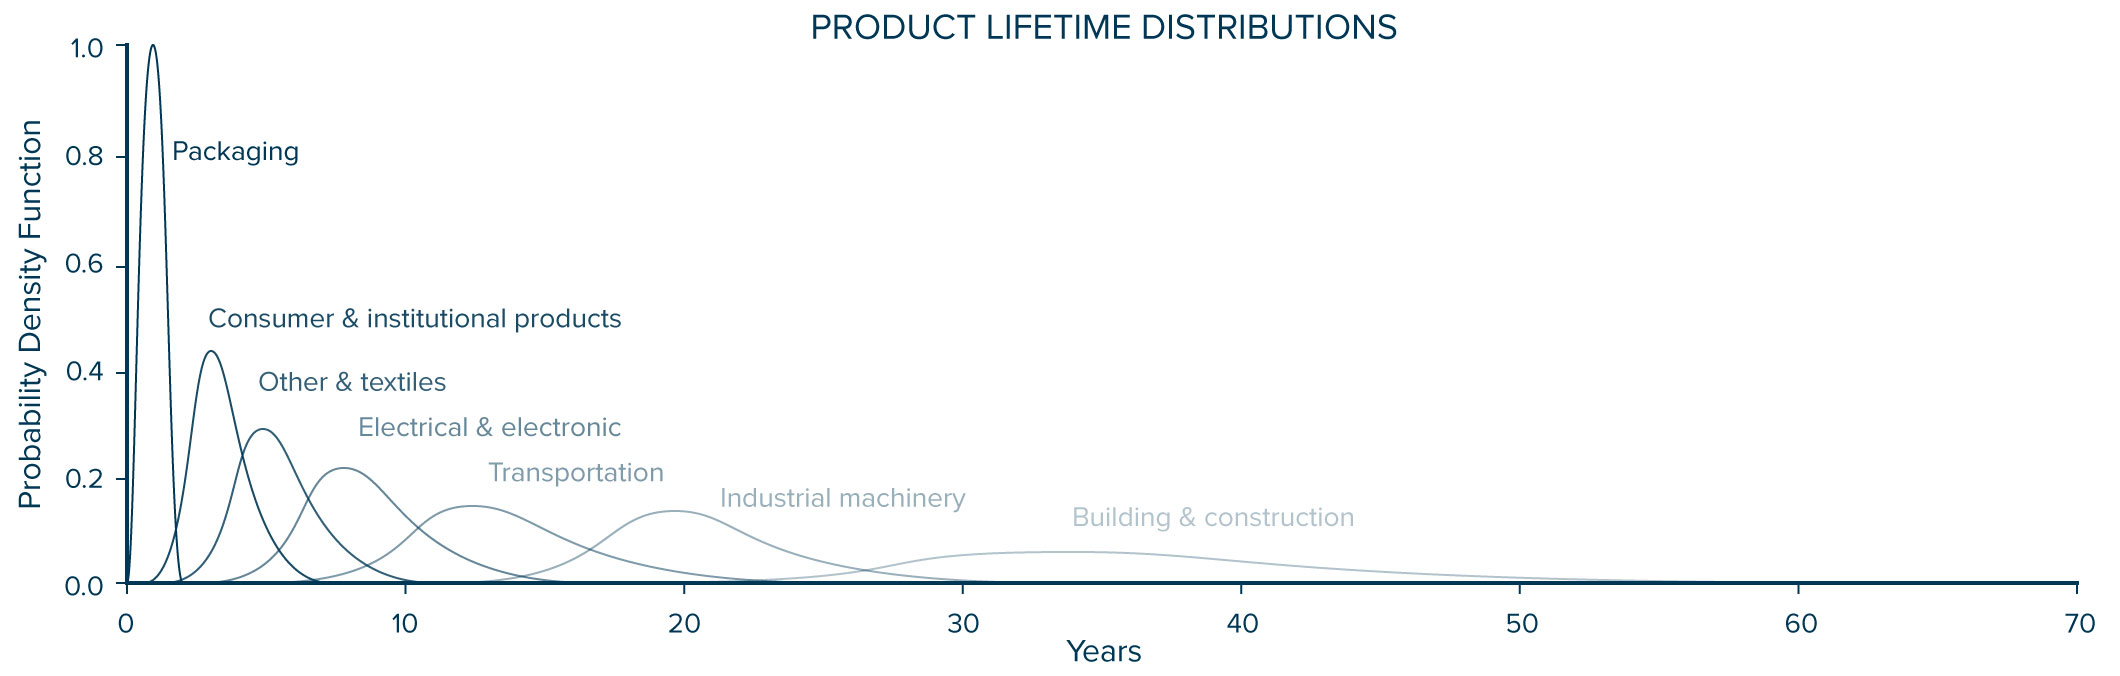 Product-Lifetime-Distribution-GeyerEtAl_adapted.jpg